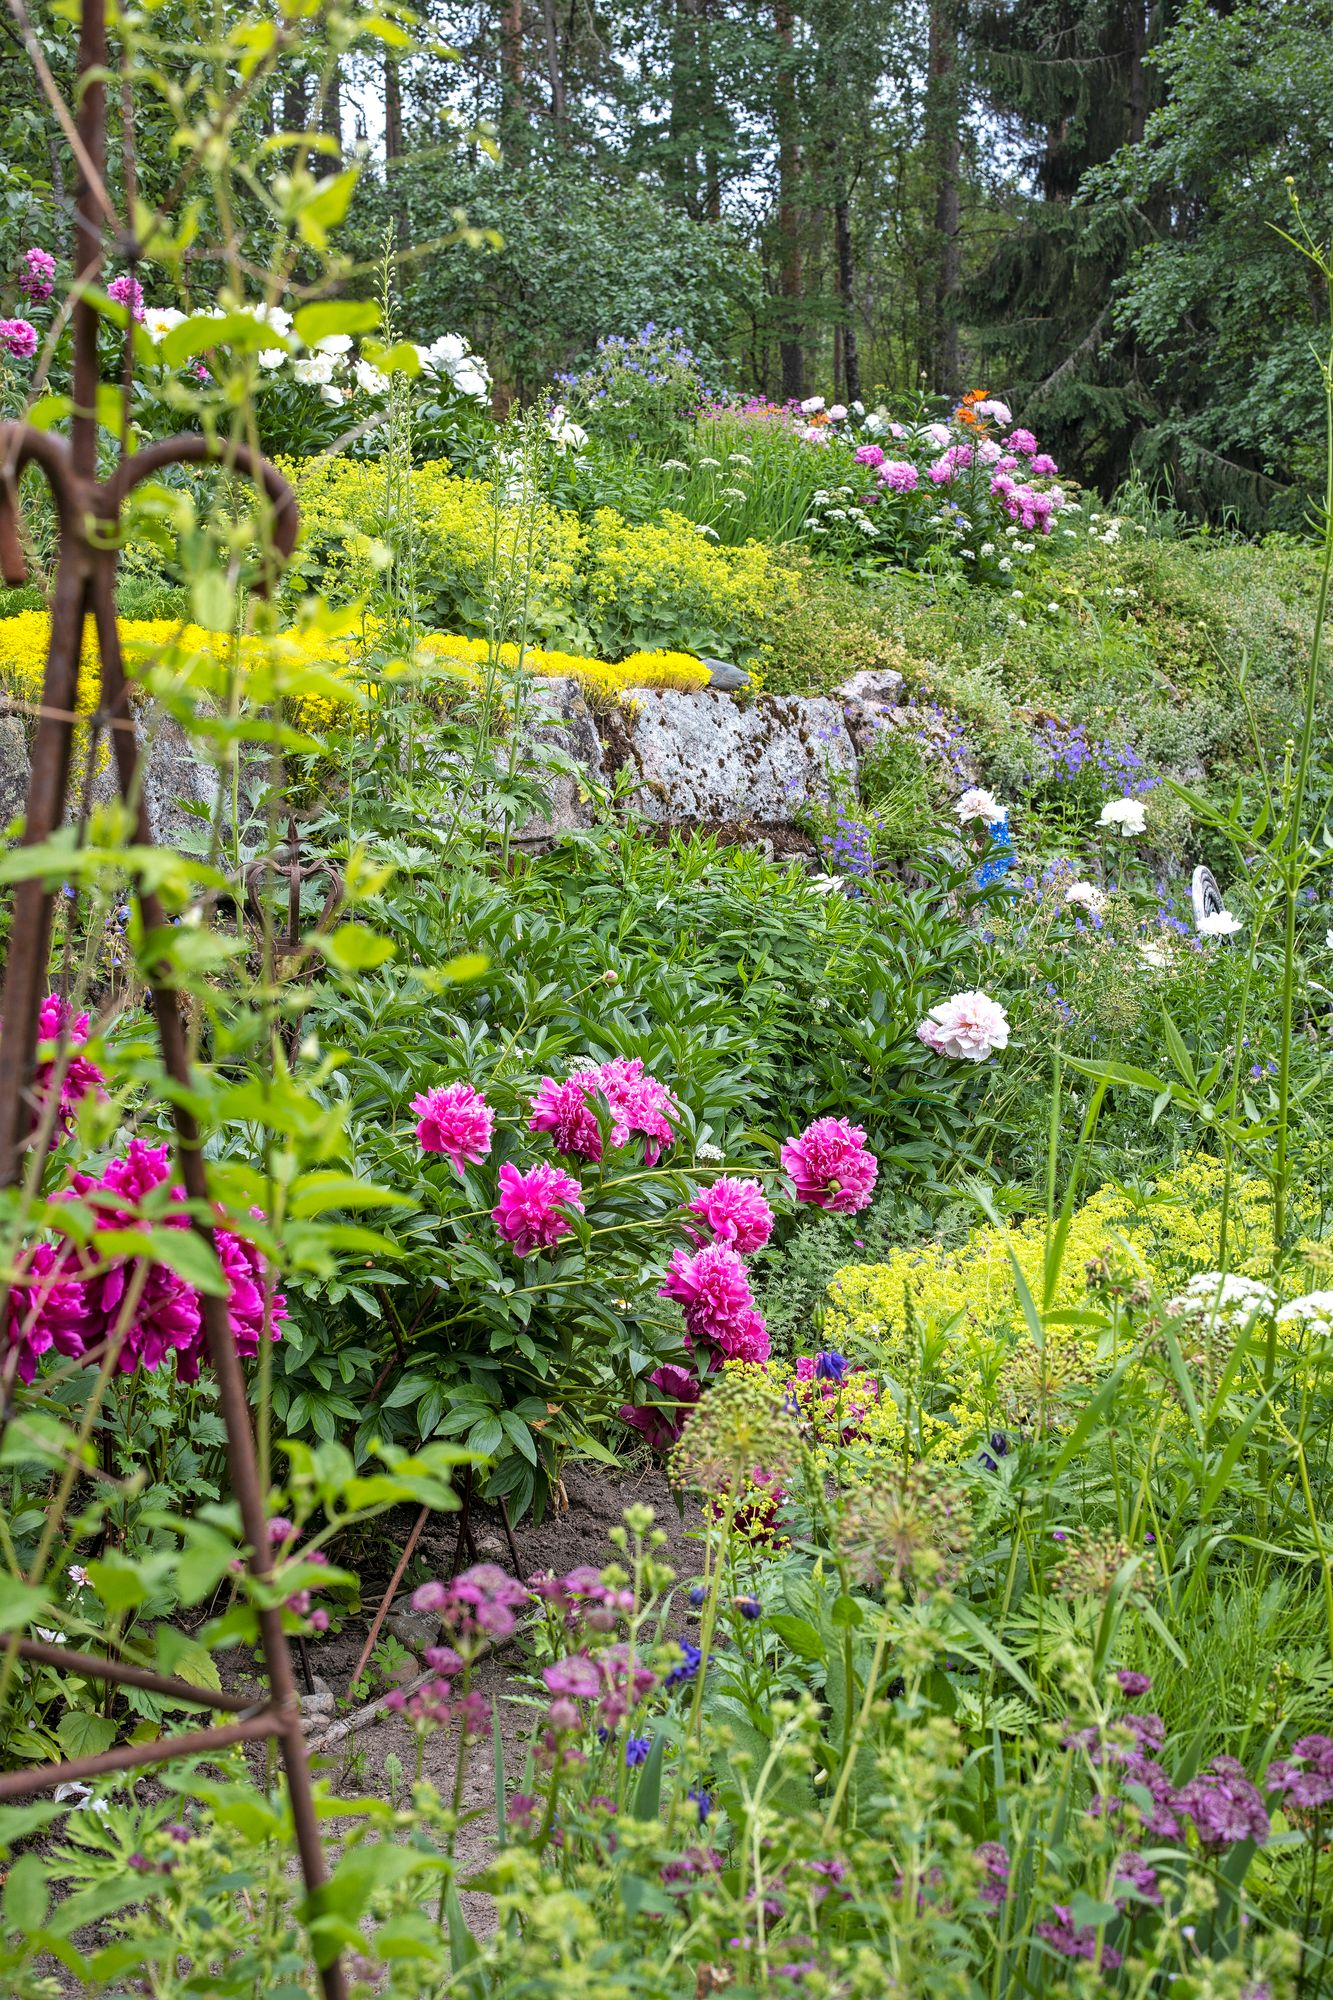 On the embanked slope, plant combinations stand out spectacularly.